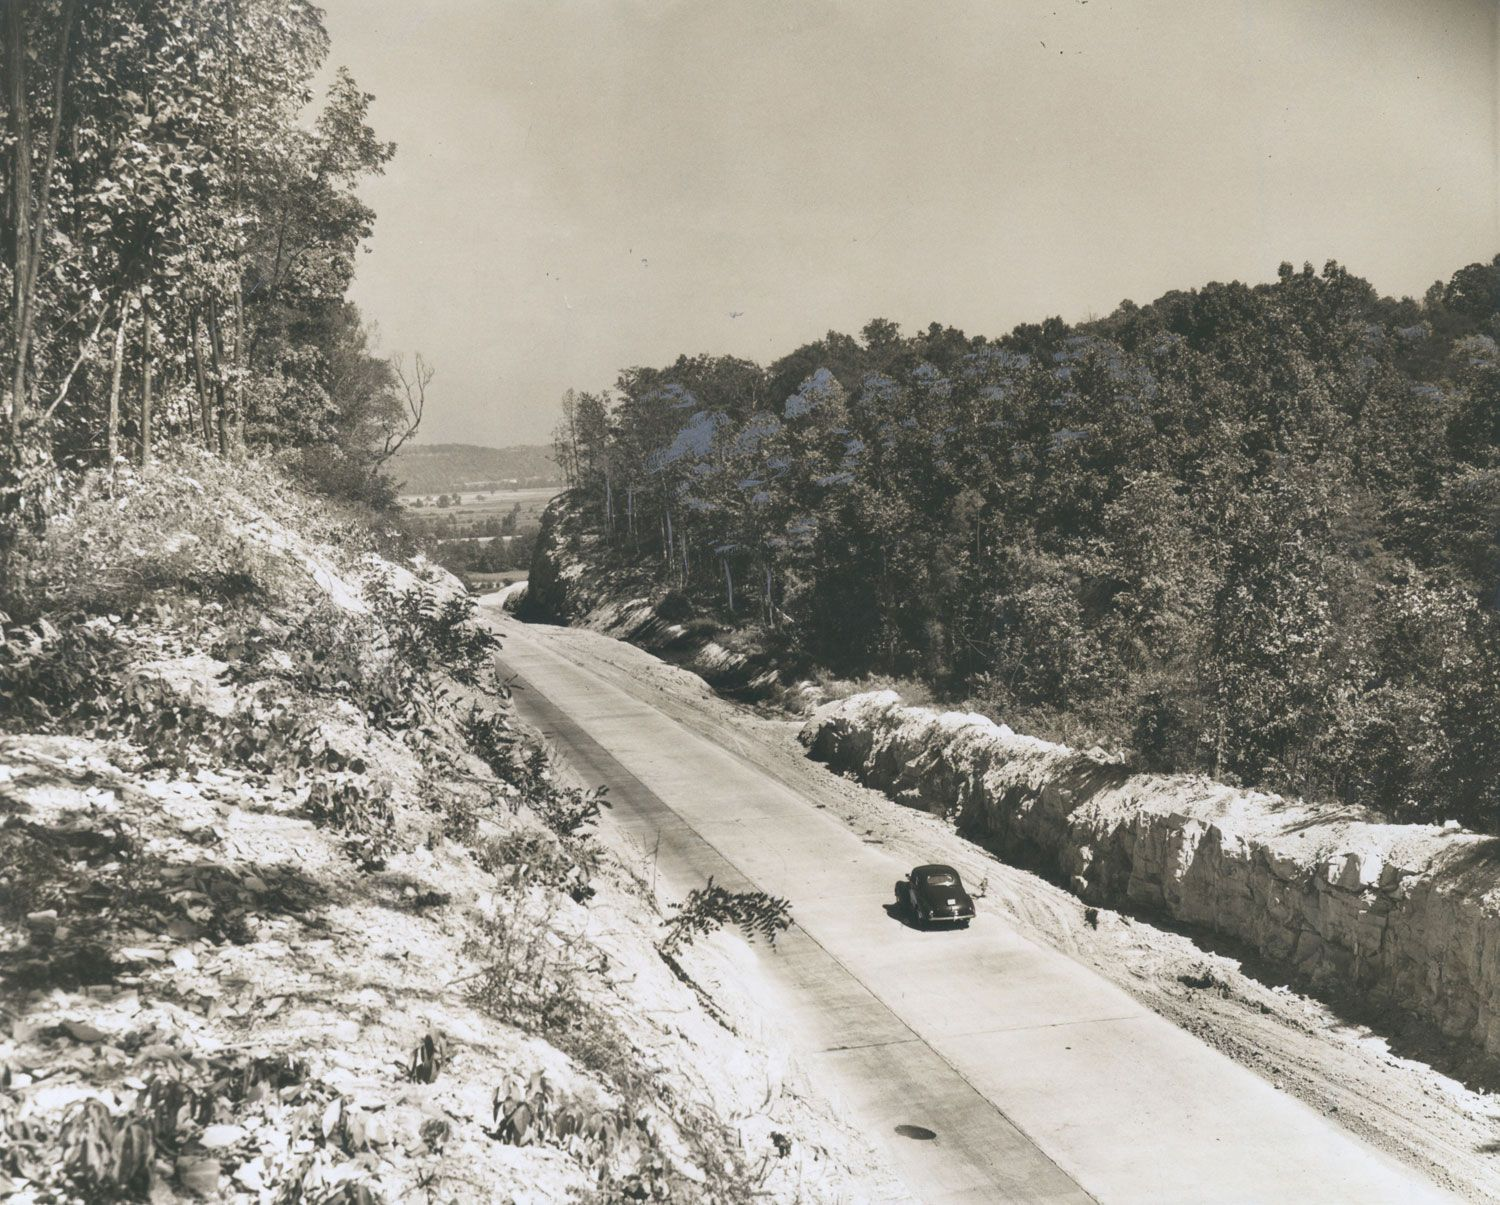 Dixie Highway near Louisville, Ky., Sept. 1940